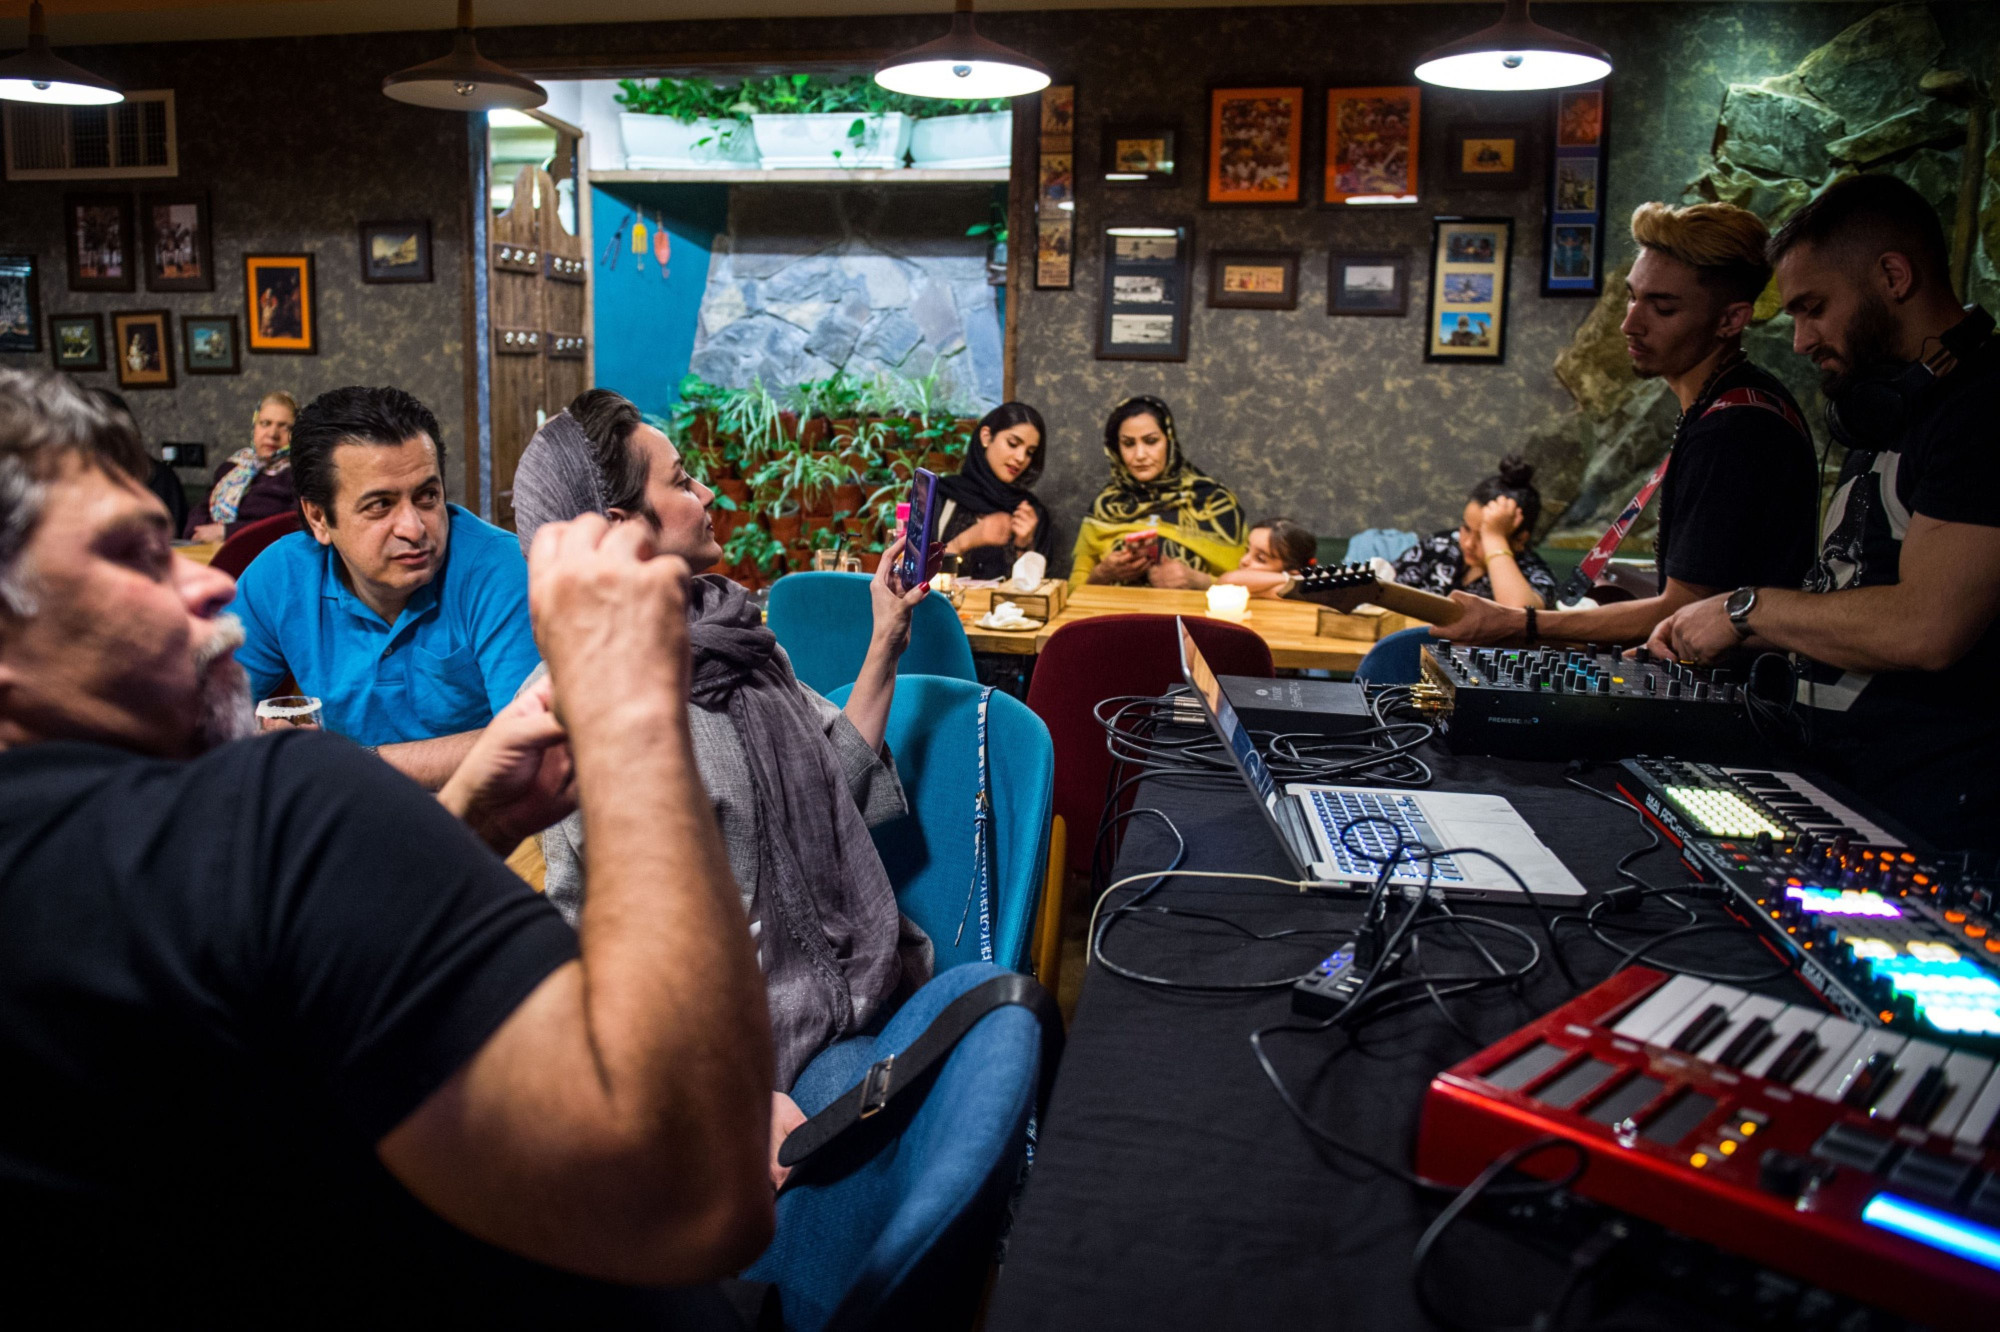 Iranians listen to live music at a night cafe in Tehran. In their lifestyles and aspirations, Iran's youth likely have more in common with their global peer group than any generation of Iranians since the 1979 revolution. | BLOOMBERG